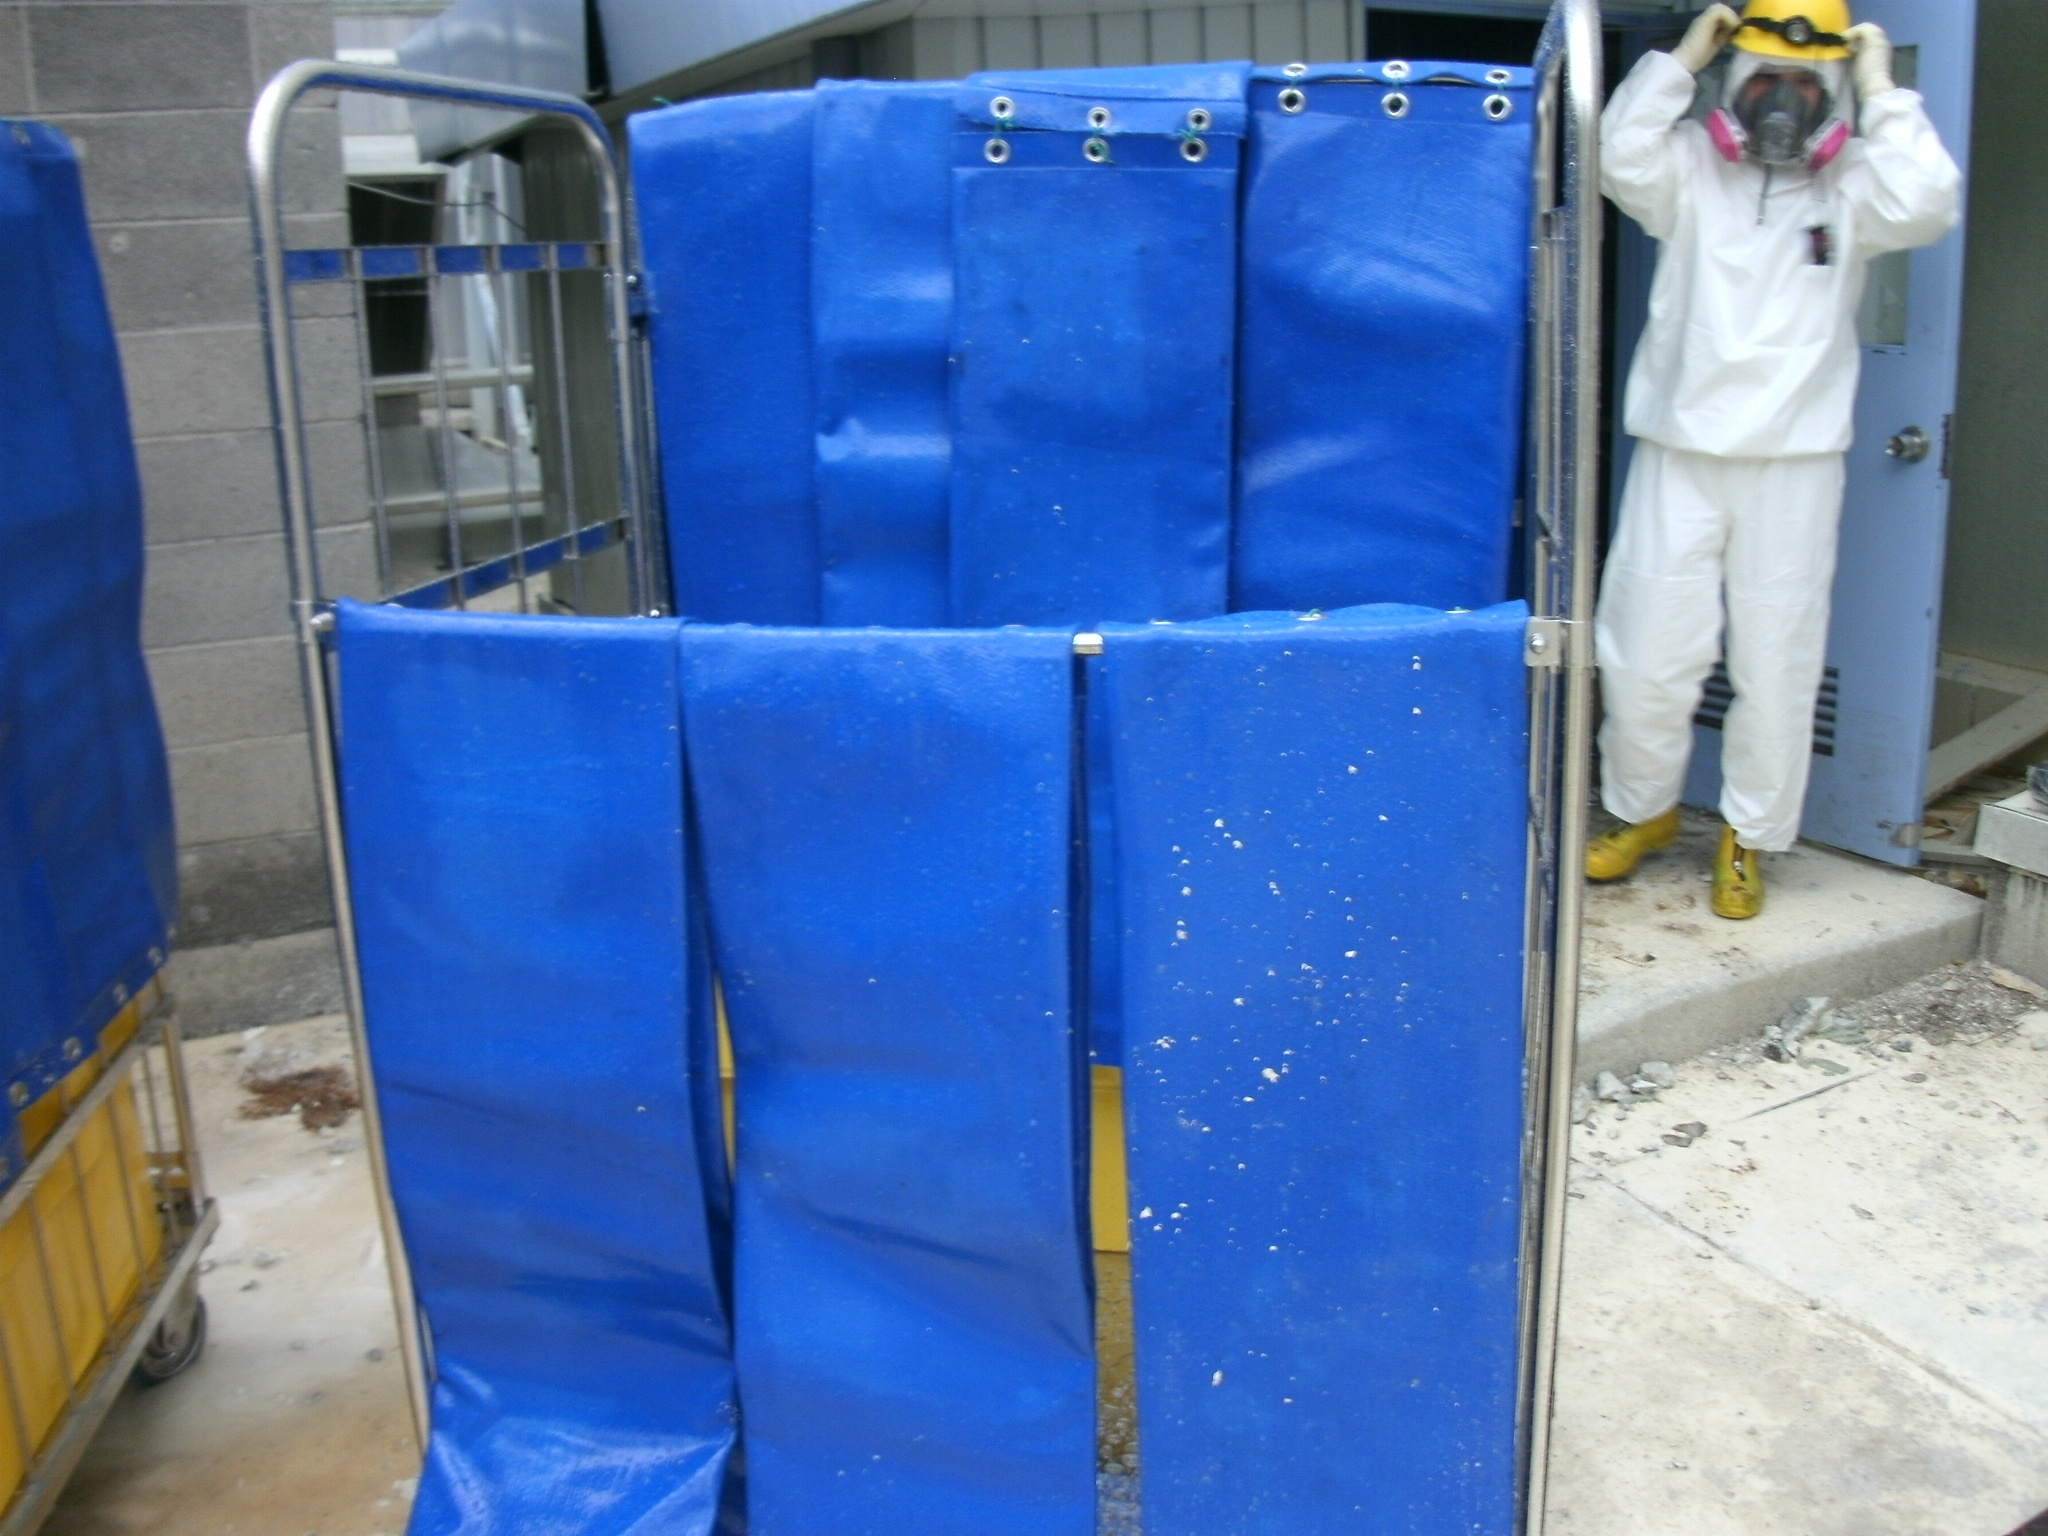 Shielding Wall of Unit 2, Fukushima Daiichi Nuclear Power Station